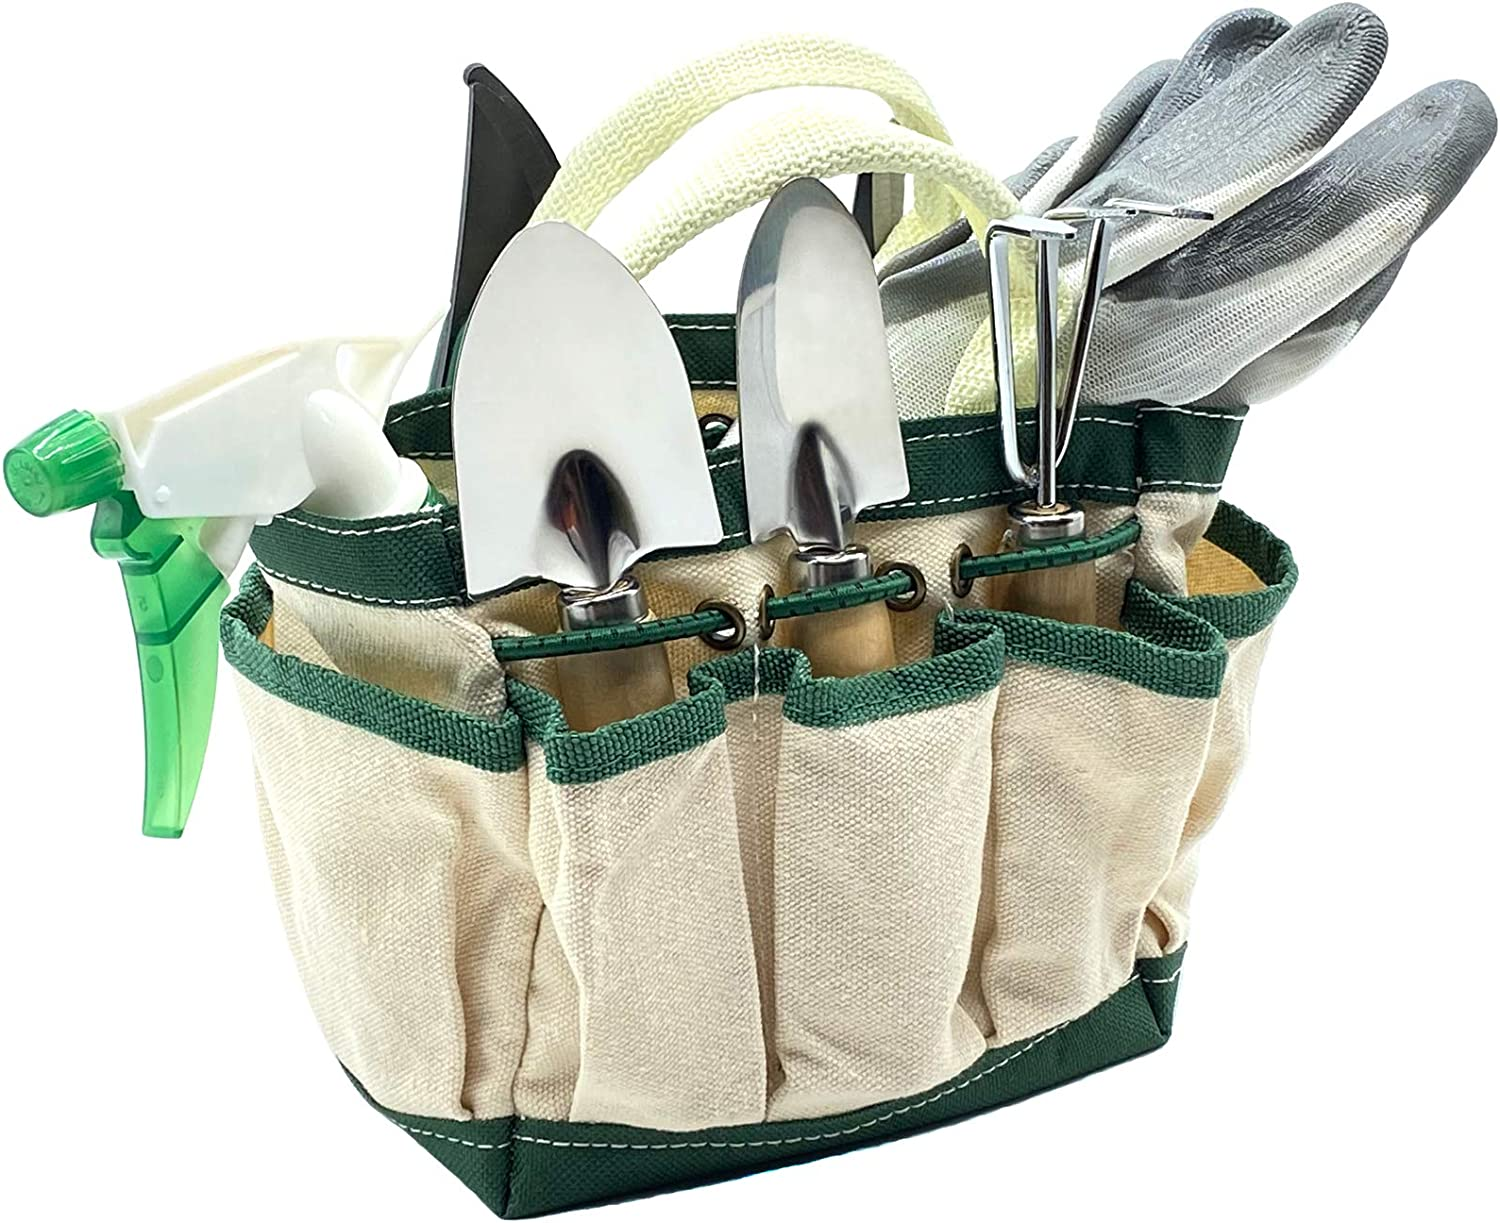 RyKing Small Garden Tool Set, 8 Piece Gardening Balcony Mini Kit Bag, Trowel Transplanter Hand Rake Pruner Snips Shovel Gloves Watering Spray, Stainless Steel Wooden Handles, Gift for Woman Men Kids